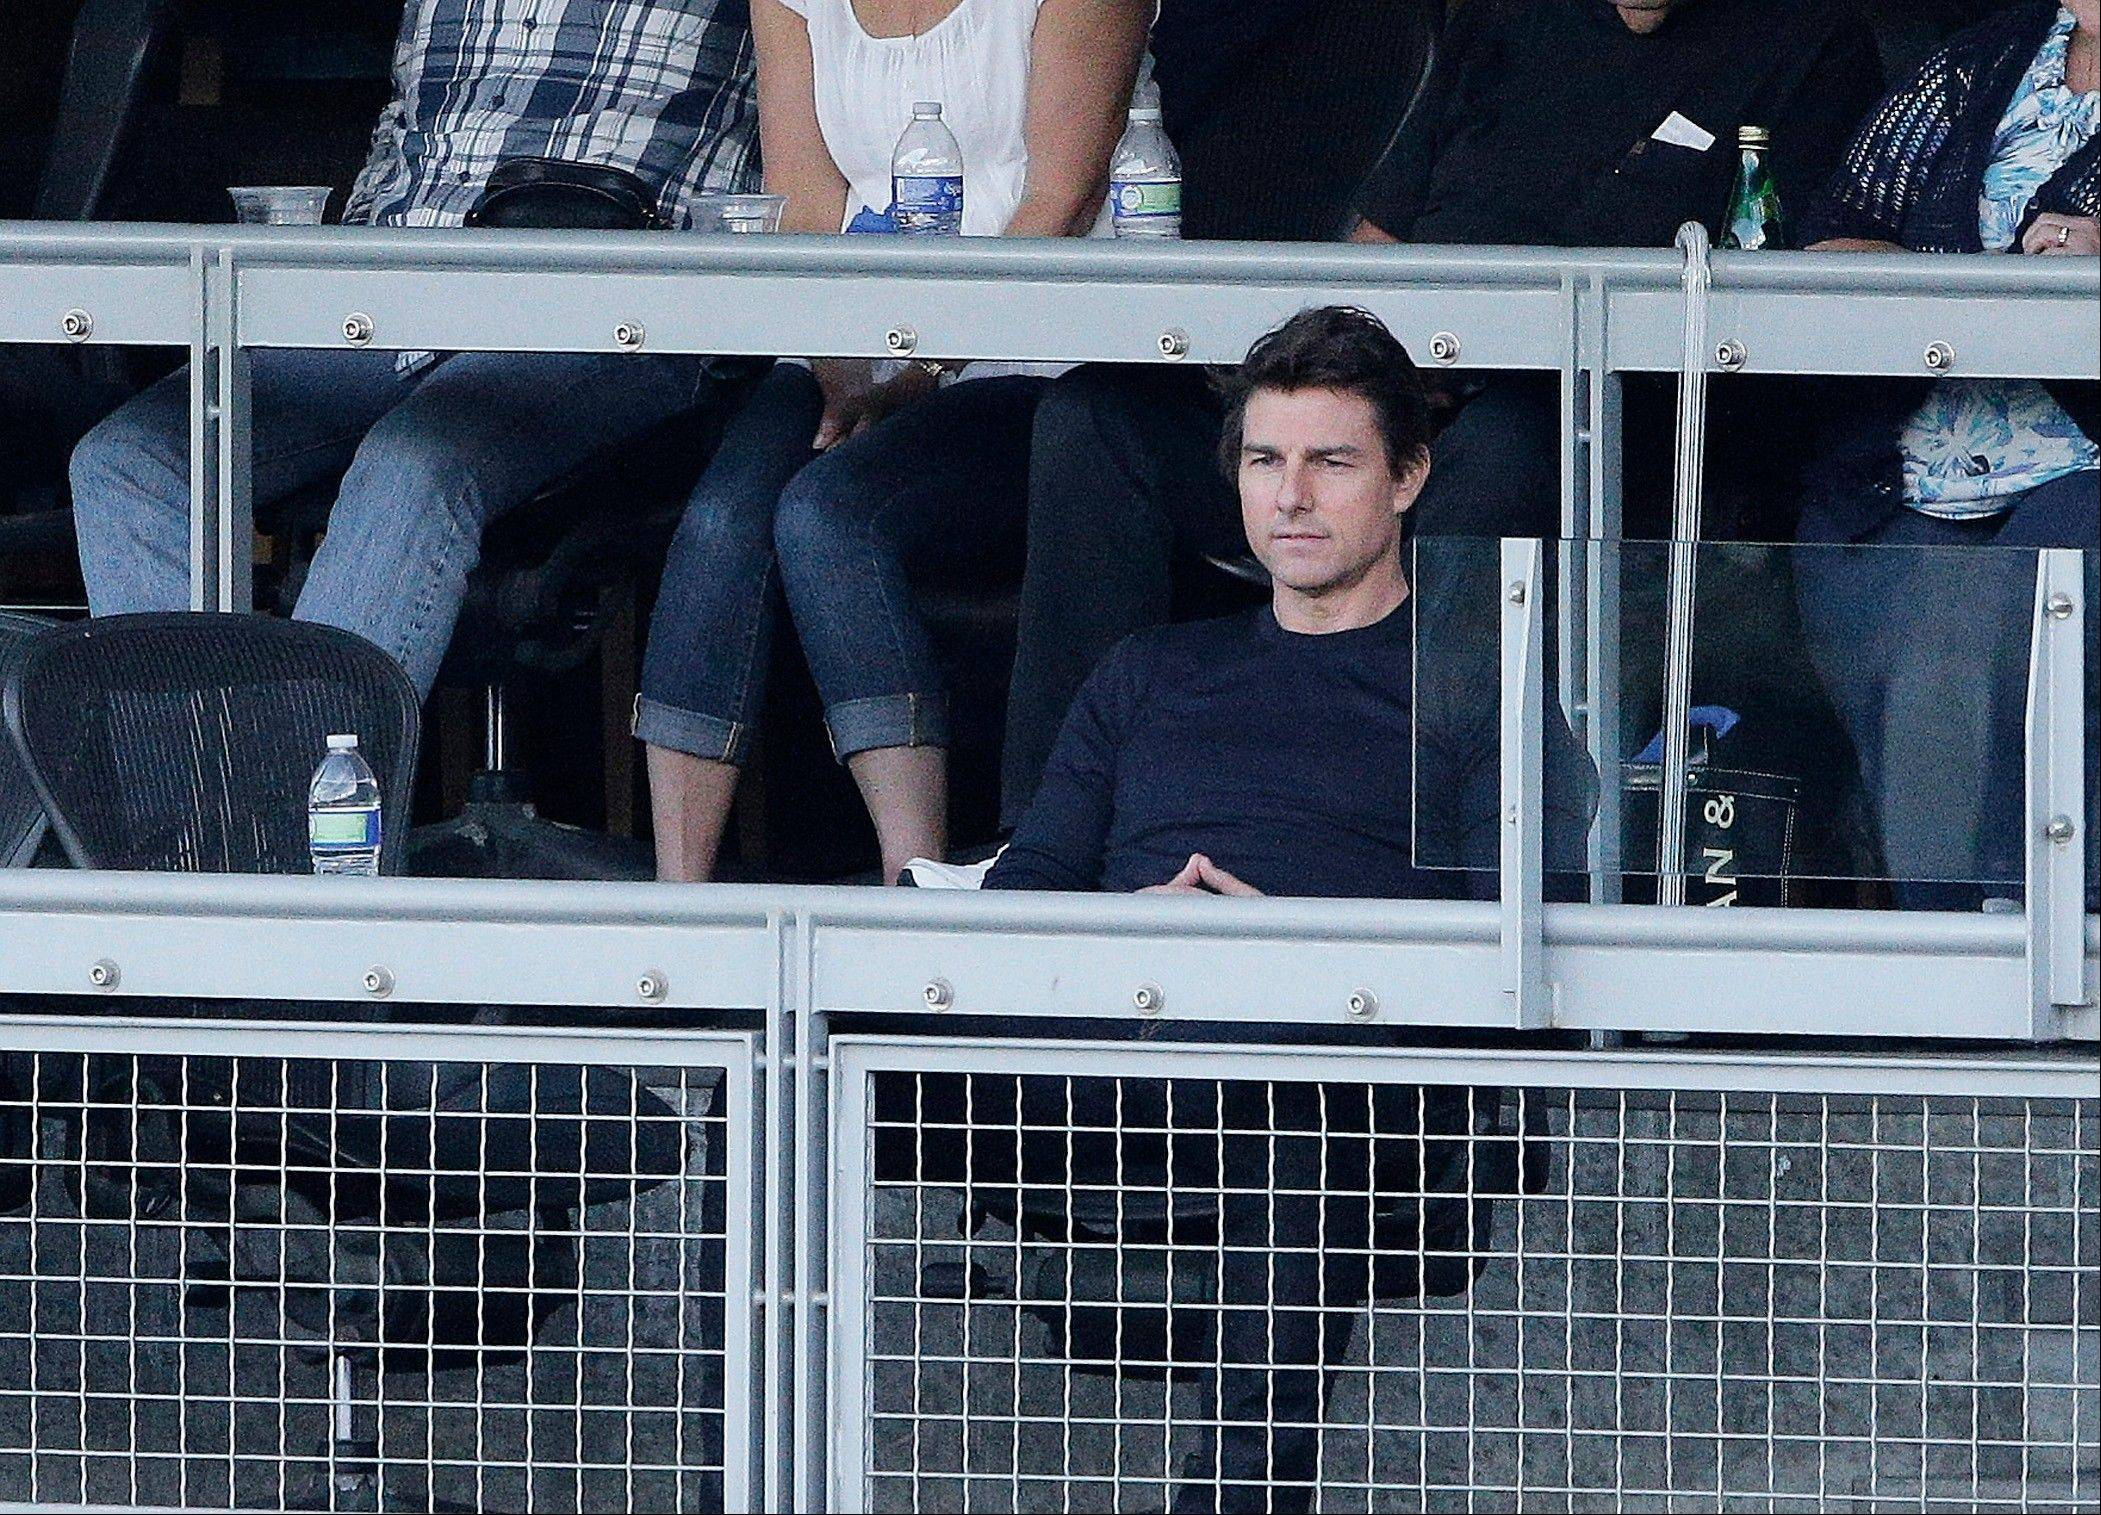 Actor Tom Cruise watches the game Tuesday in Los Angeles.